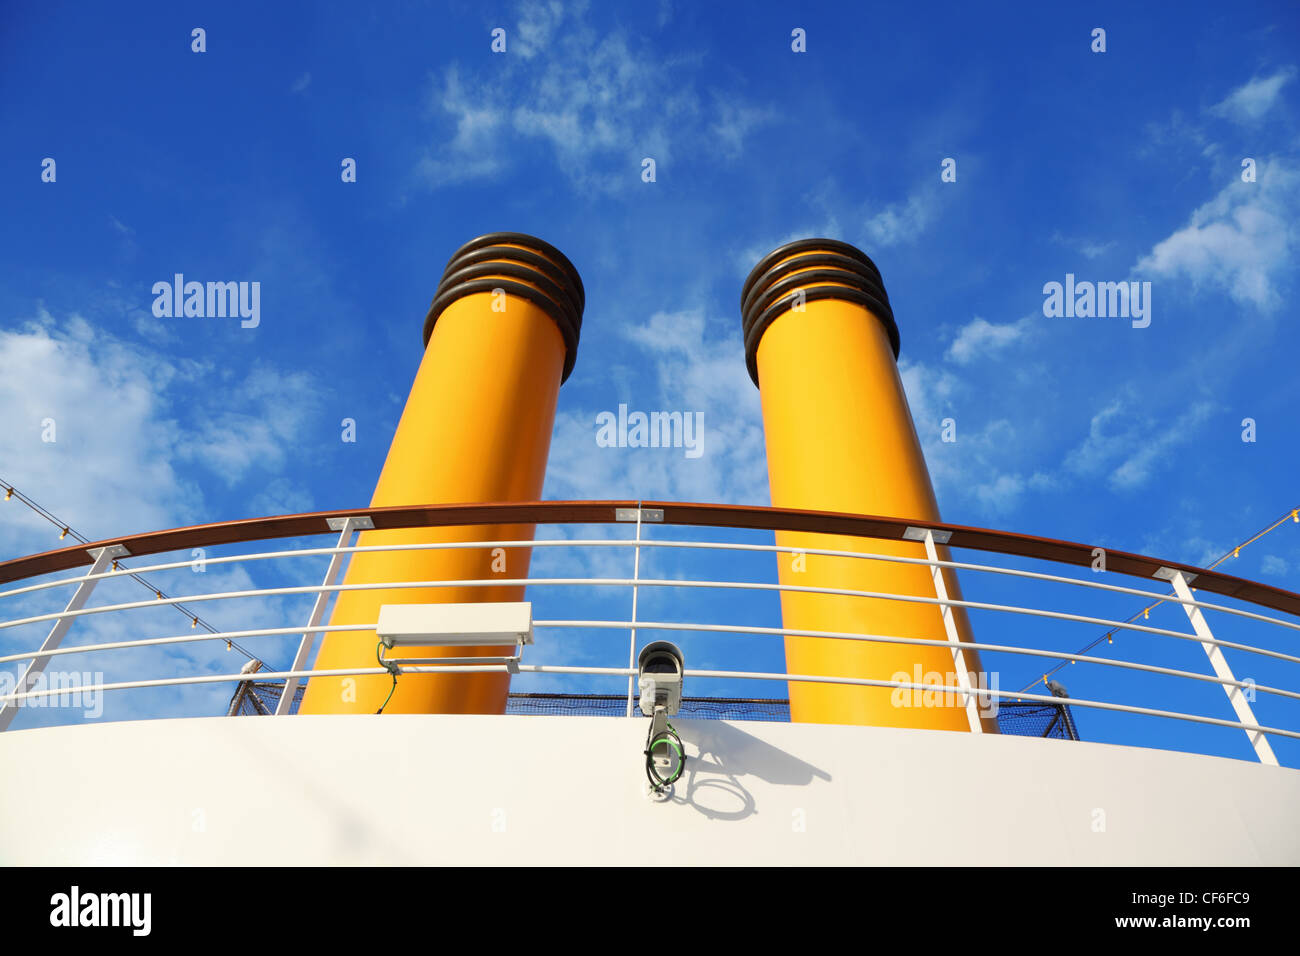 Two Yellow Pipes On Big Cruise Ship Camera And Wires Lamps Stock - Cruise ship cam